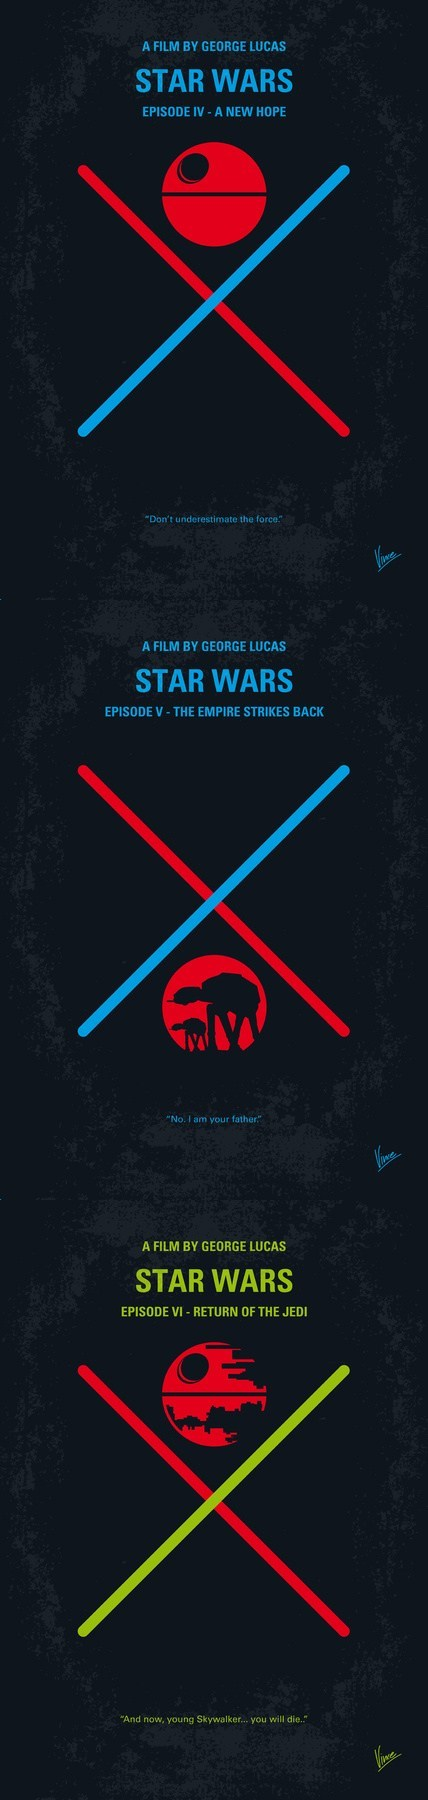 A New Hope,Empire Strikes Back,minimalism,posters,return of the jedi,star wars,trilogy